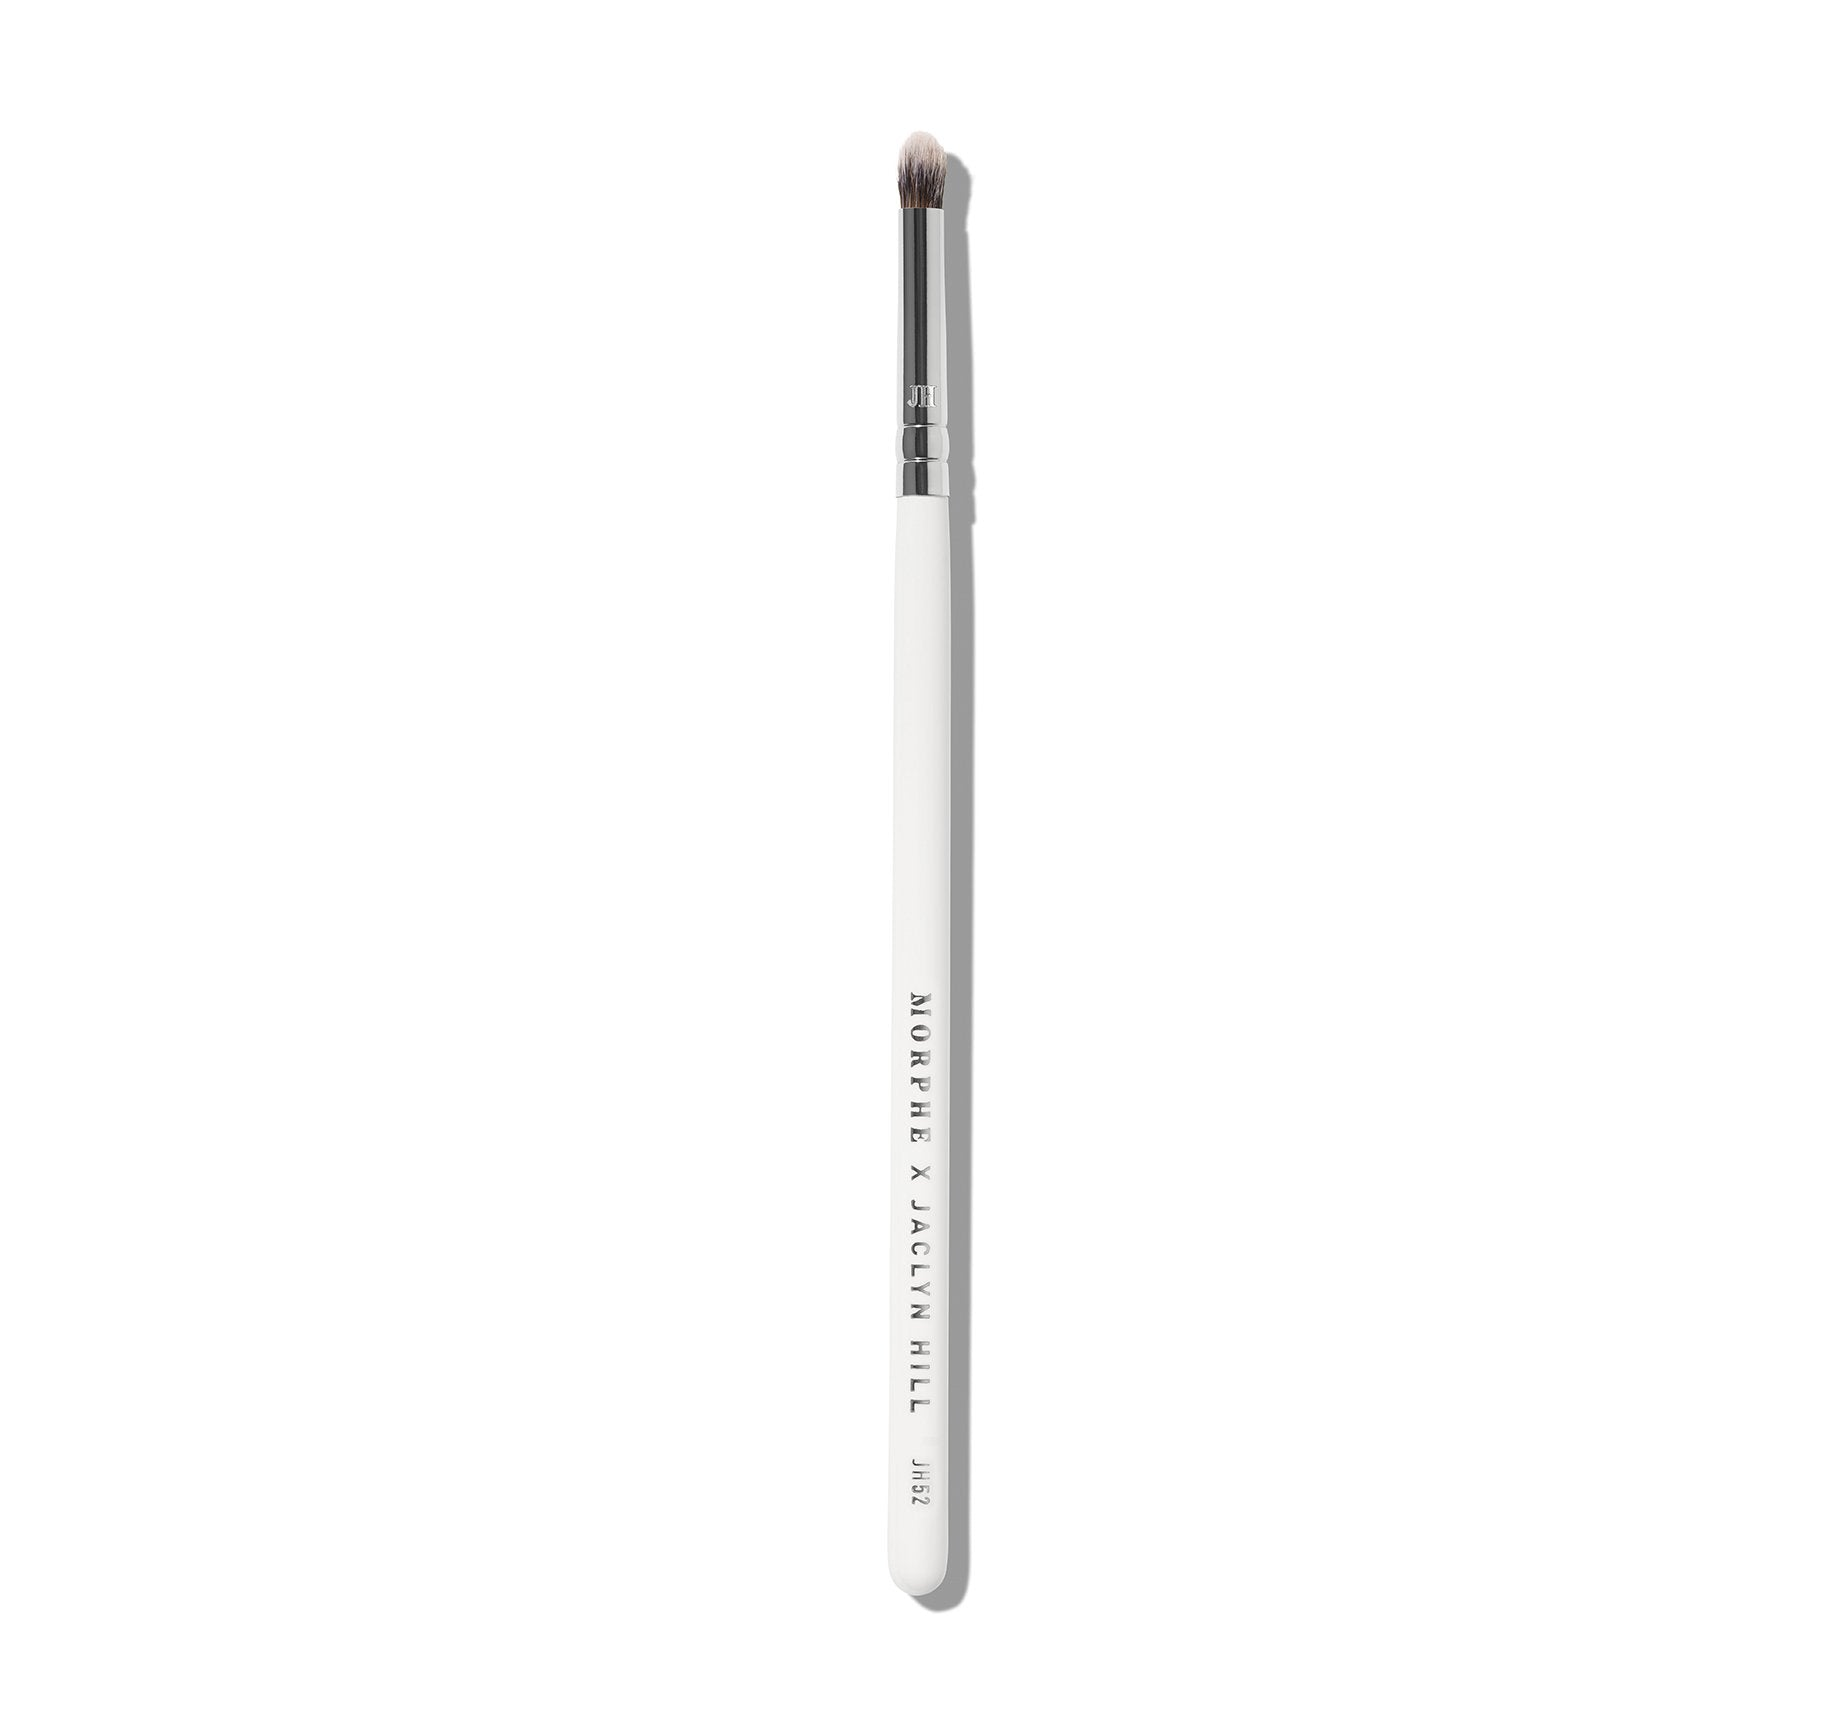 MORPHE X JACLYN HILL JH52 DETAIL OBSESSED BRUSH, view larger image